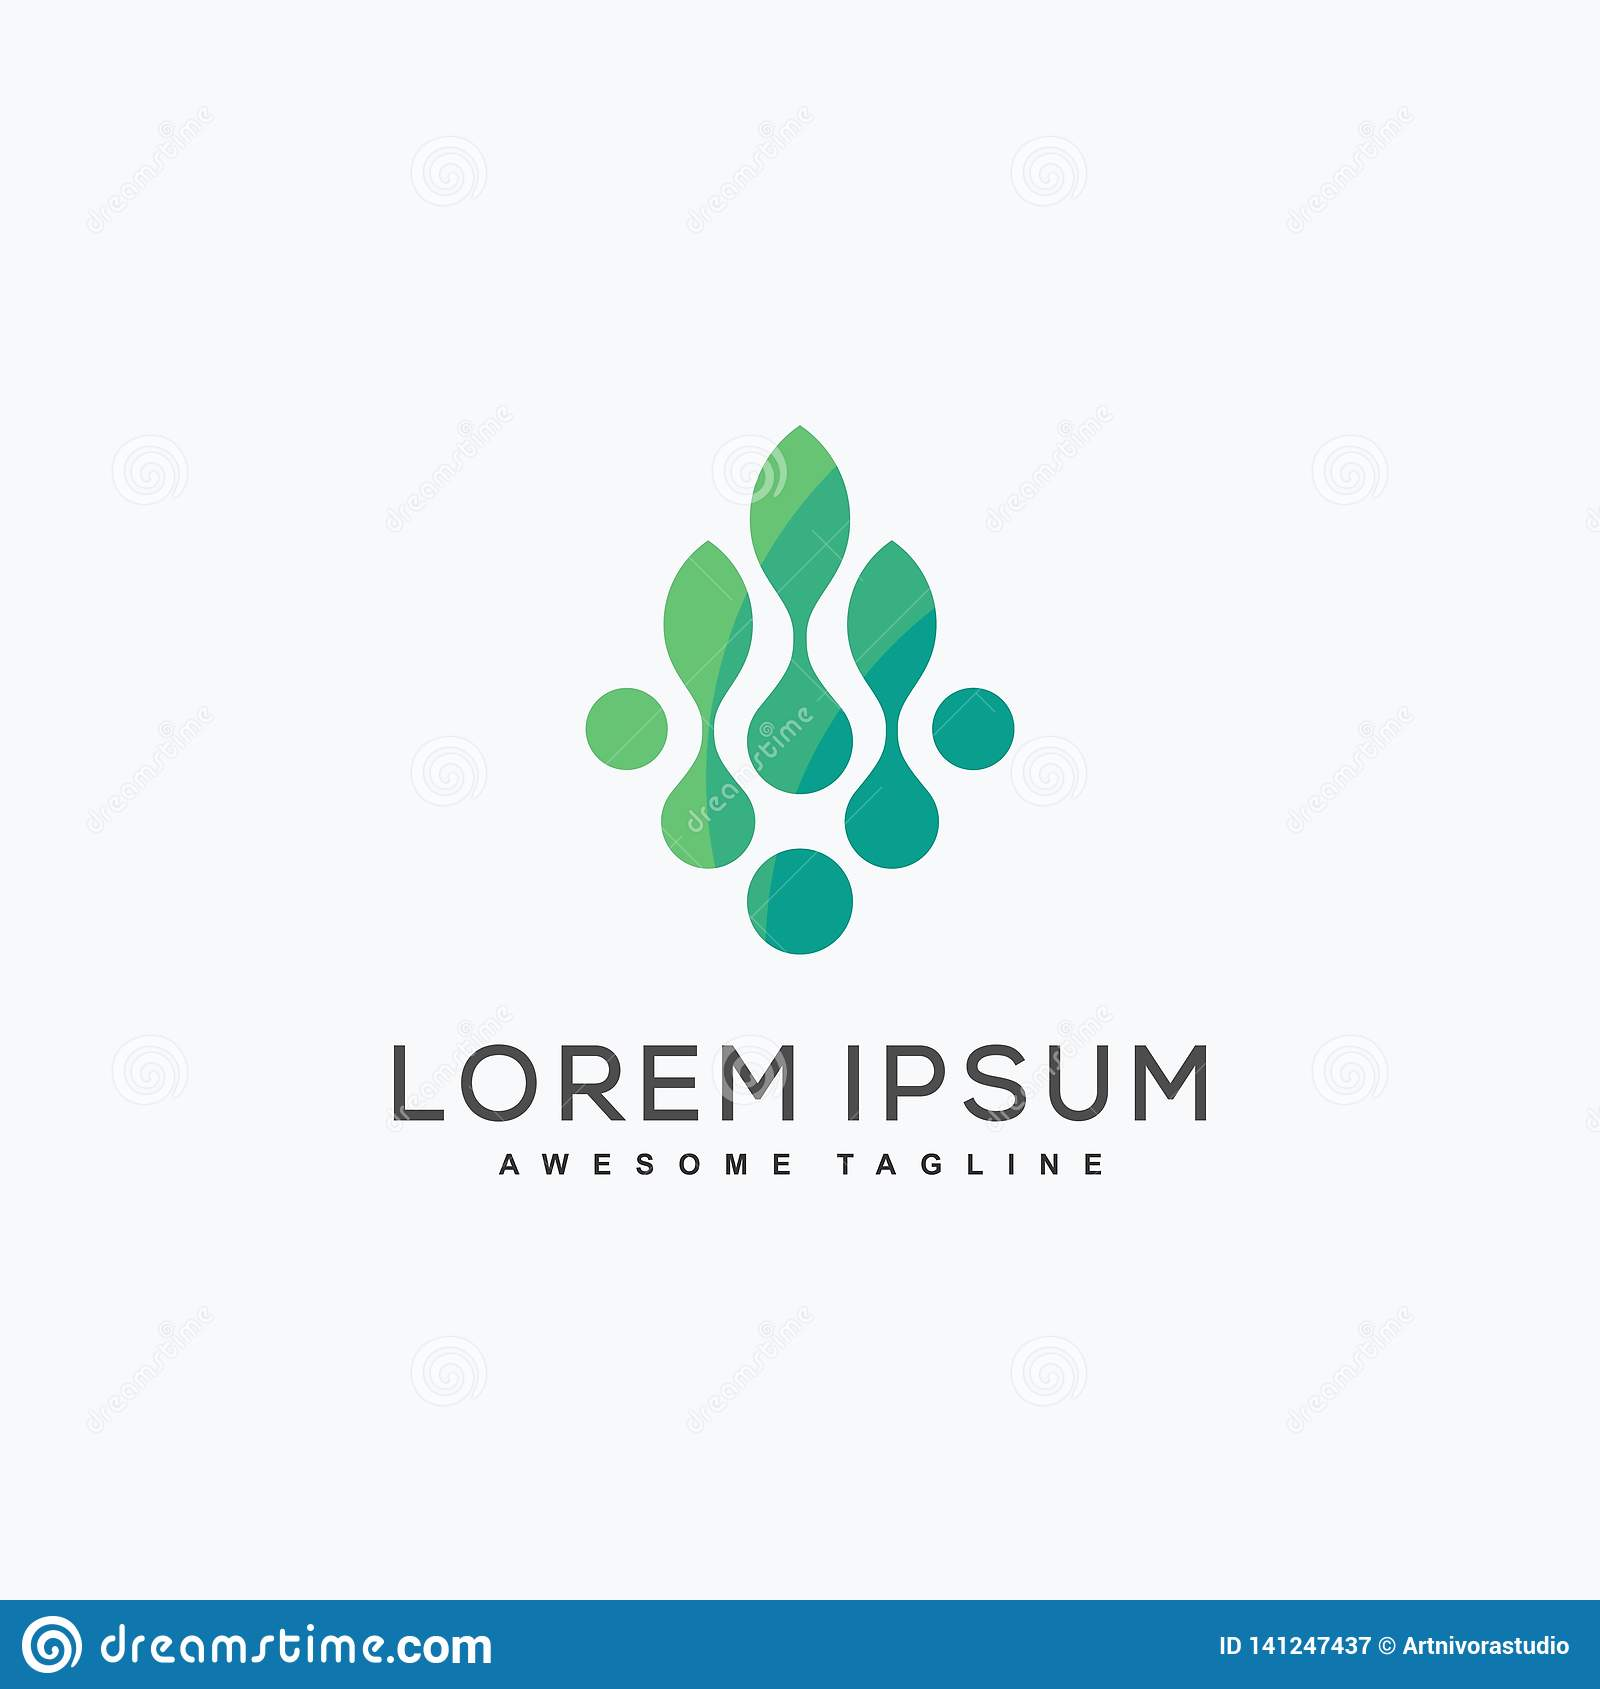 Abstract Leaf Tech Concept illustration vector Design template